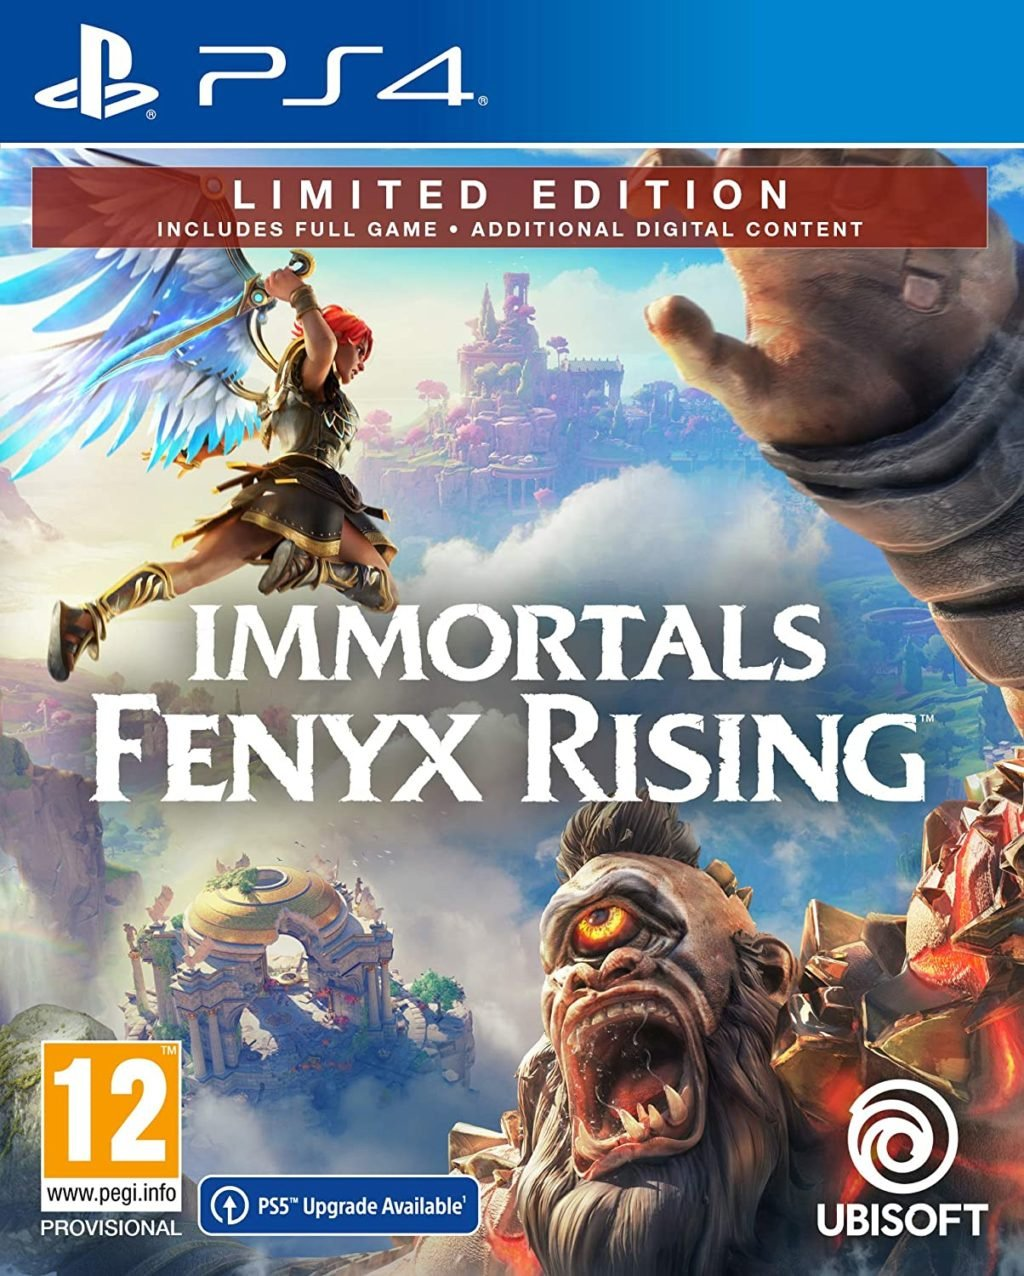 PS5 Upgrade Available on the Immortals Fenyx Rising box art